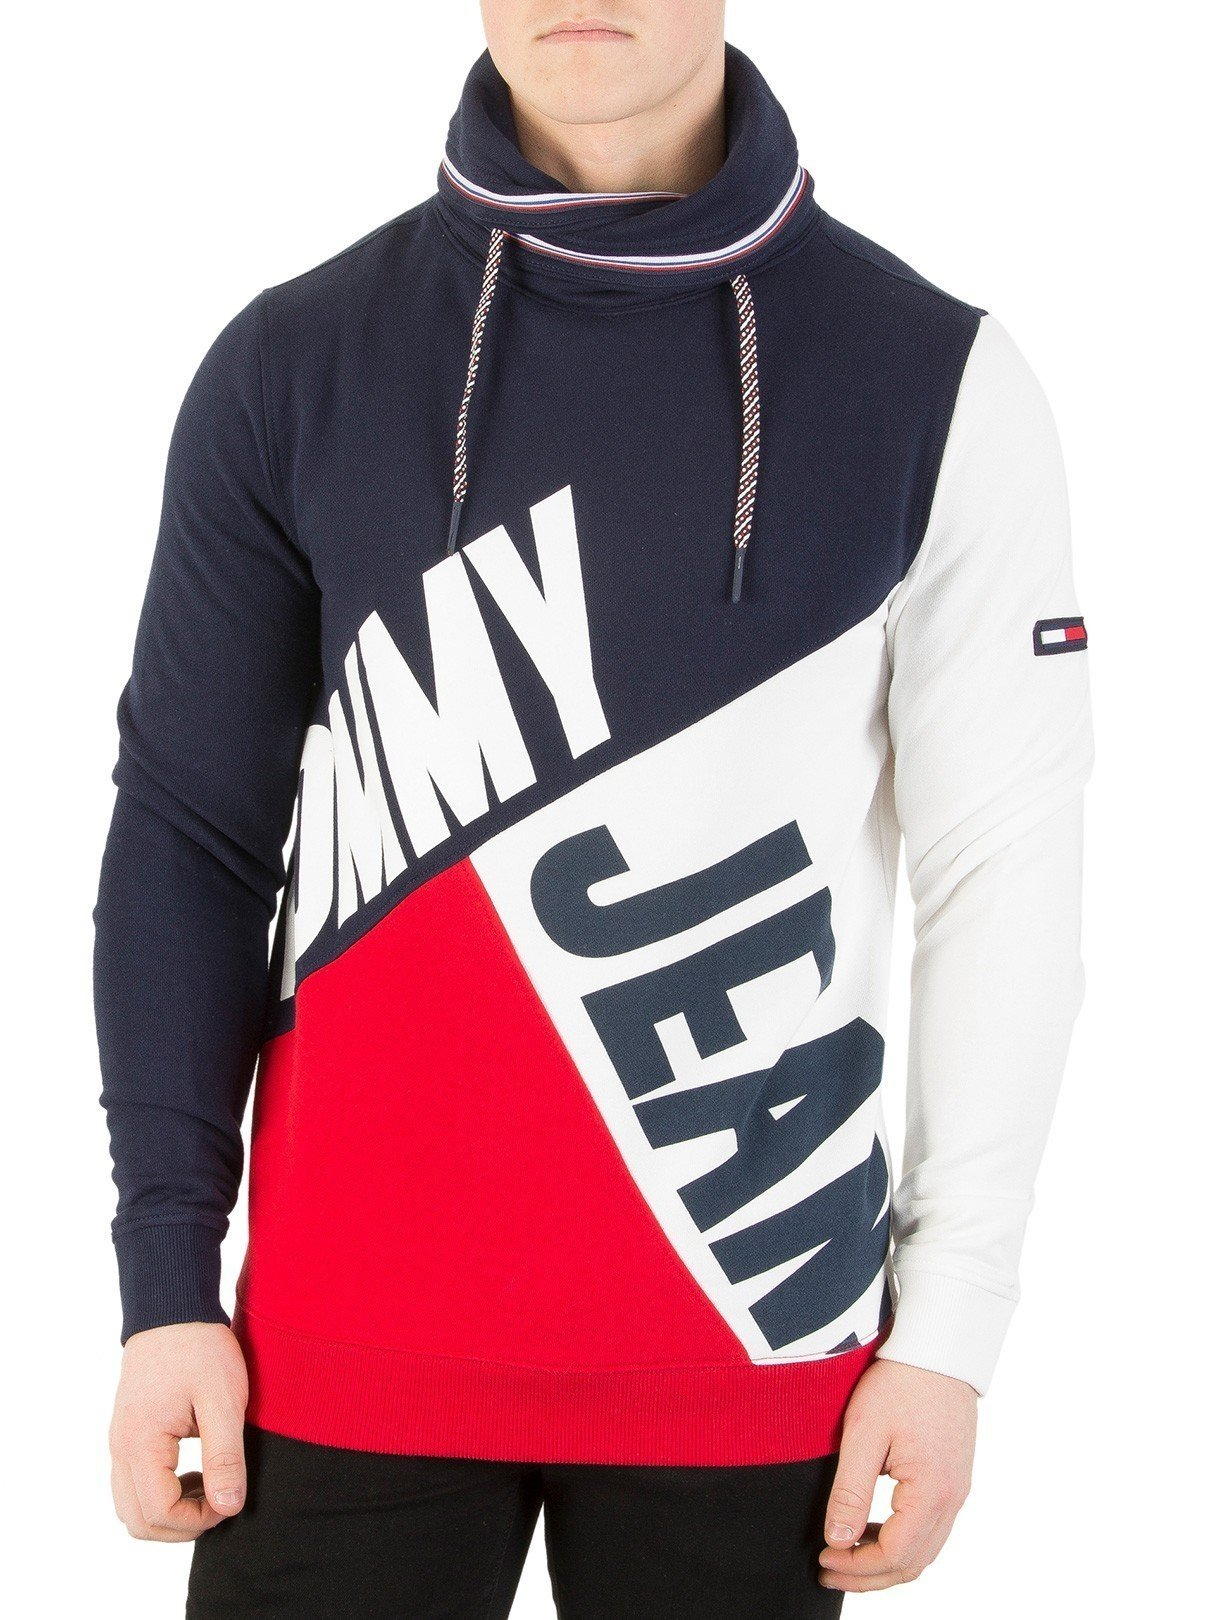 Tommy Jeans Men's Colour Block Sweatshirt, Multicoloured, Medium